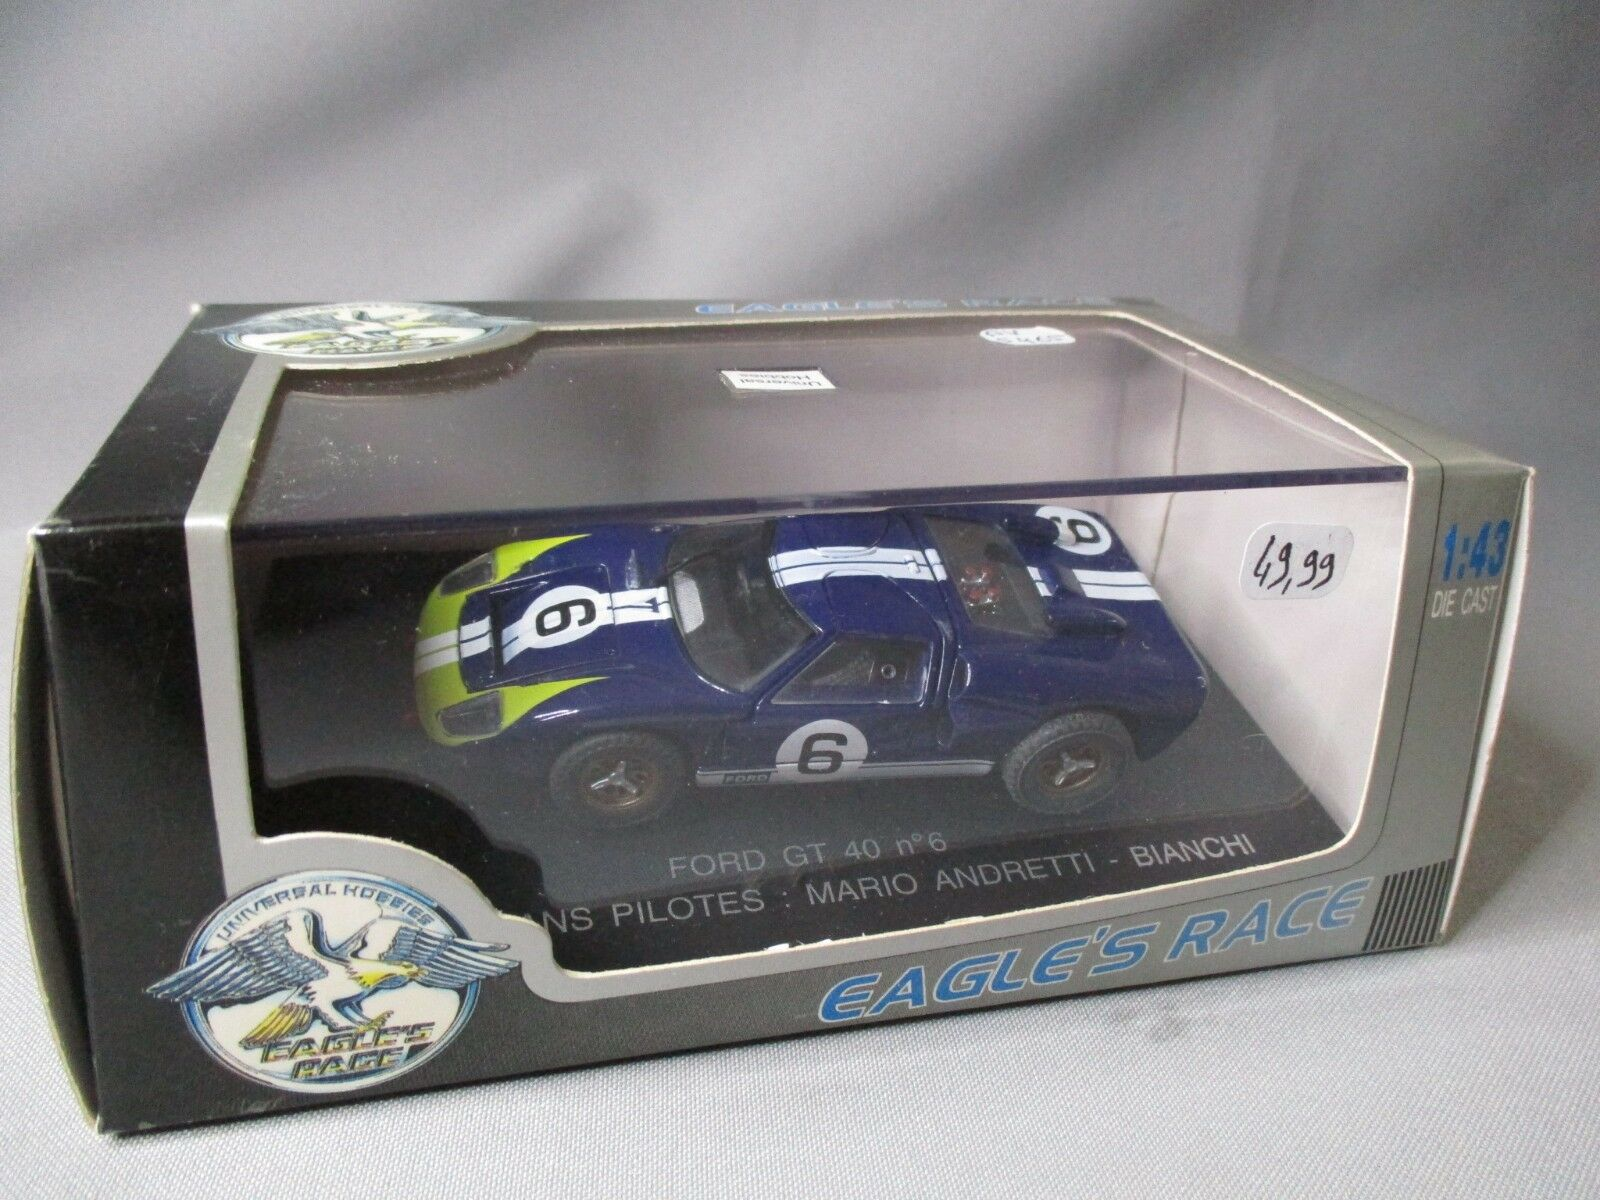 DV5465 UNIVERSAL HOBBIES EAGLE'S RACE FORD GT 40  6 LE MANS 1966  ANDRETTI